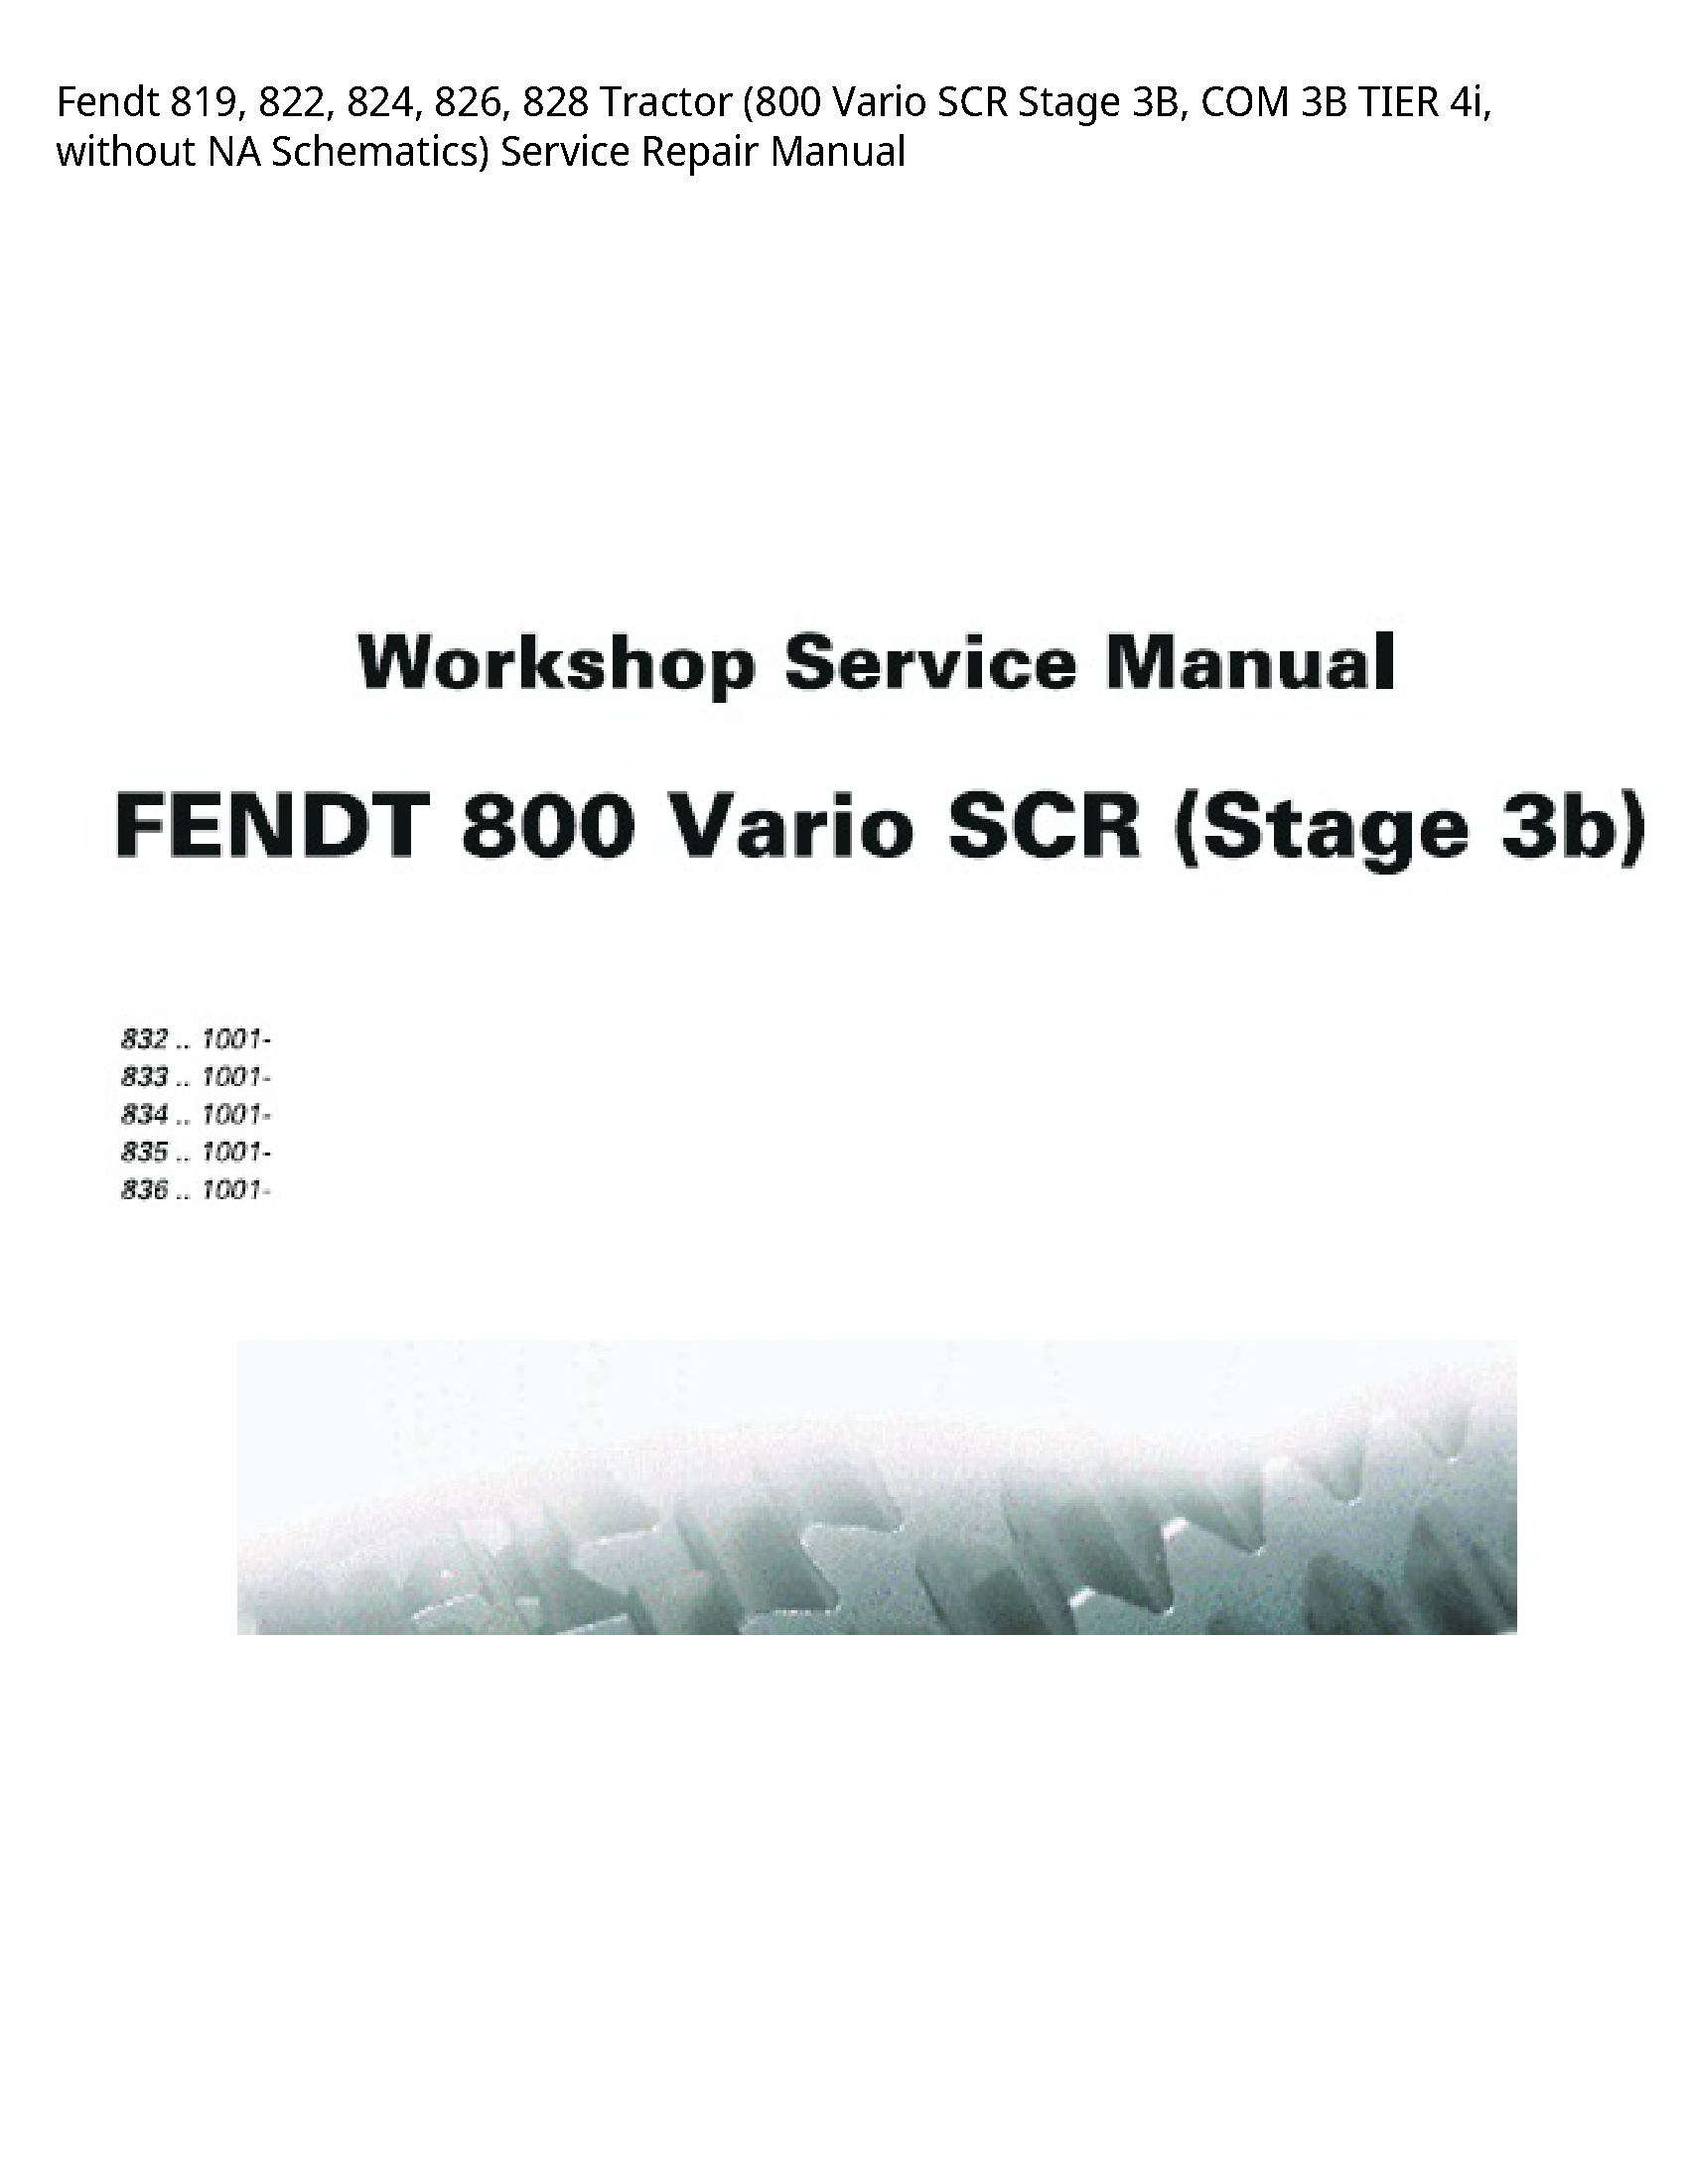 Fendt 819 Tractor Vario SCR Stage COM TIER without NA Schematics) manual